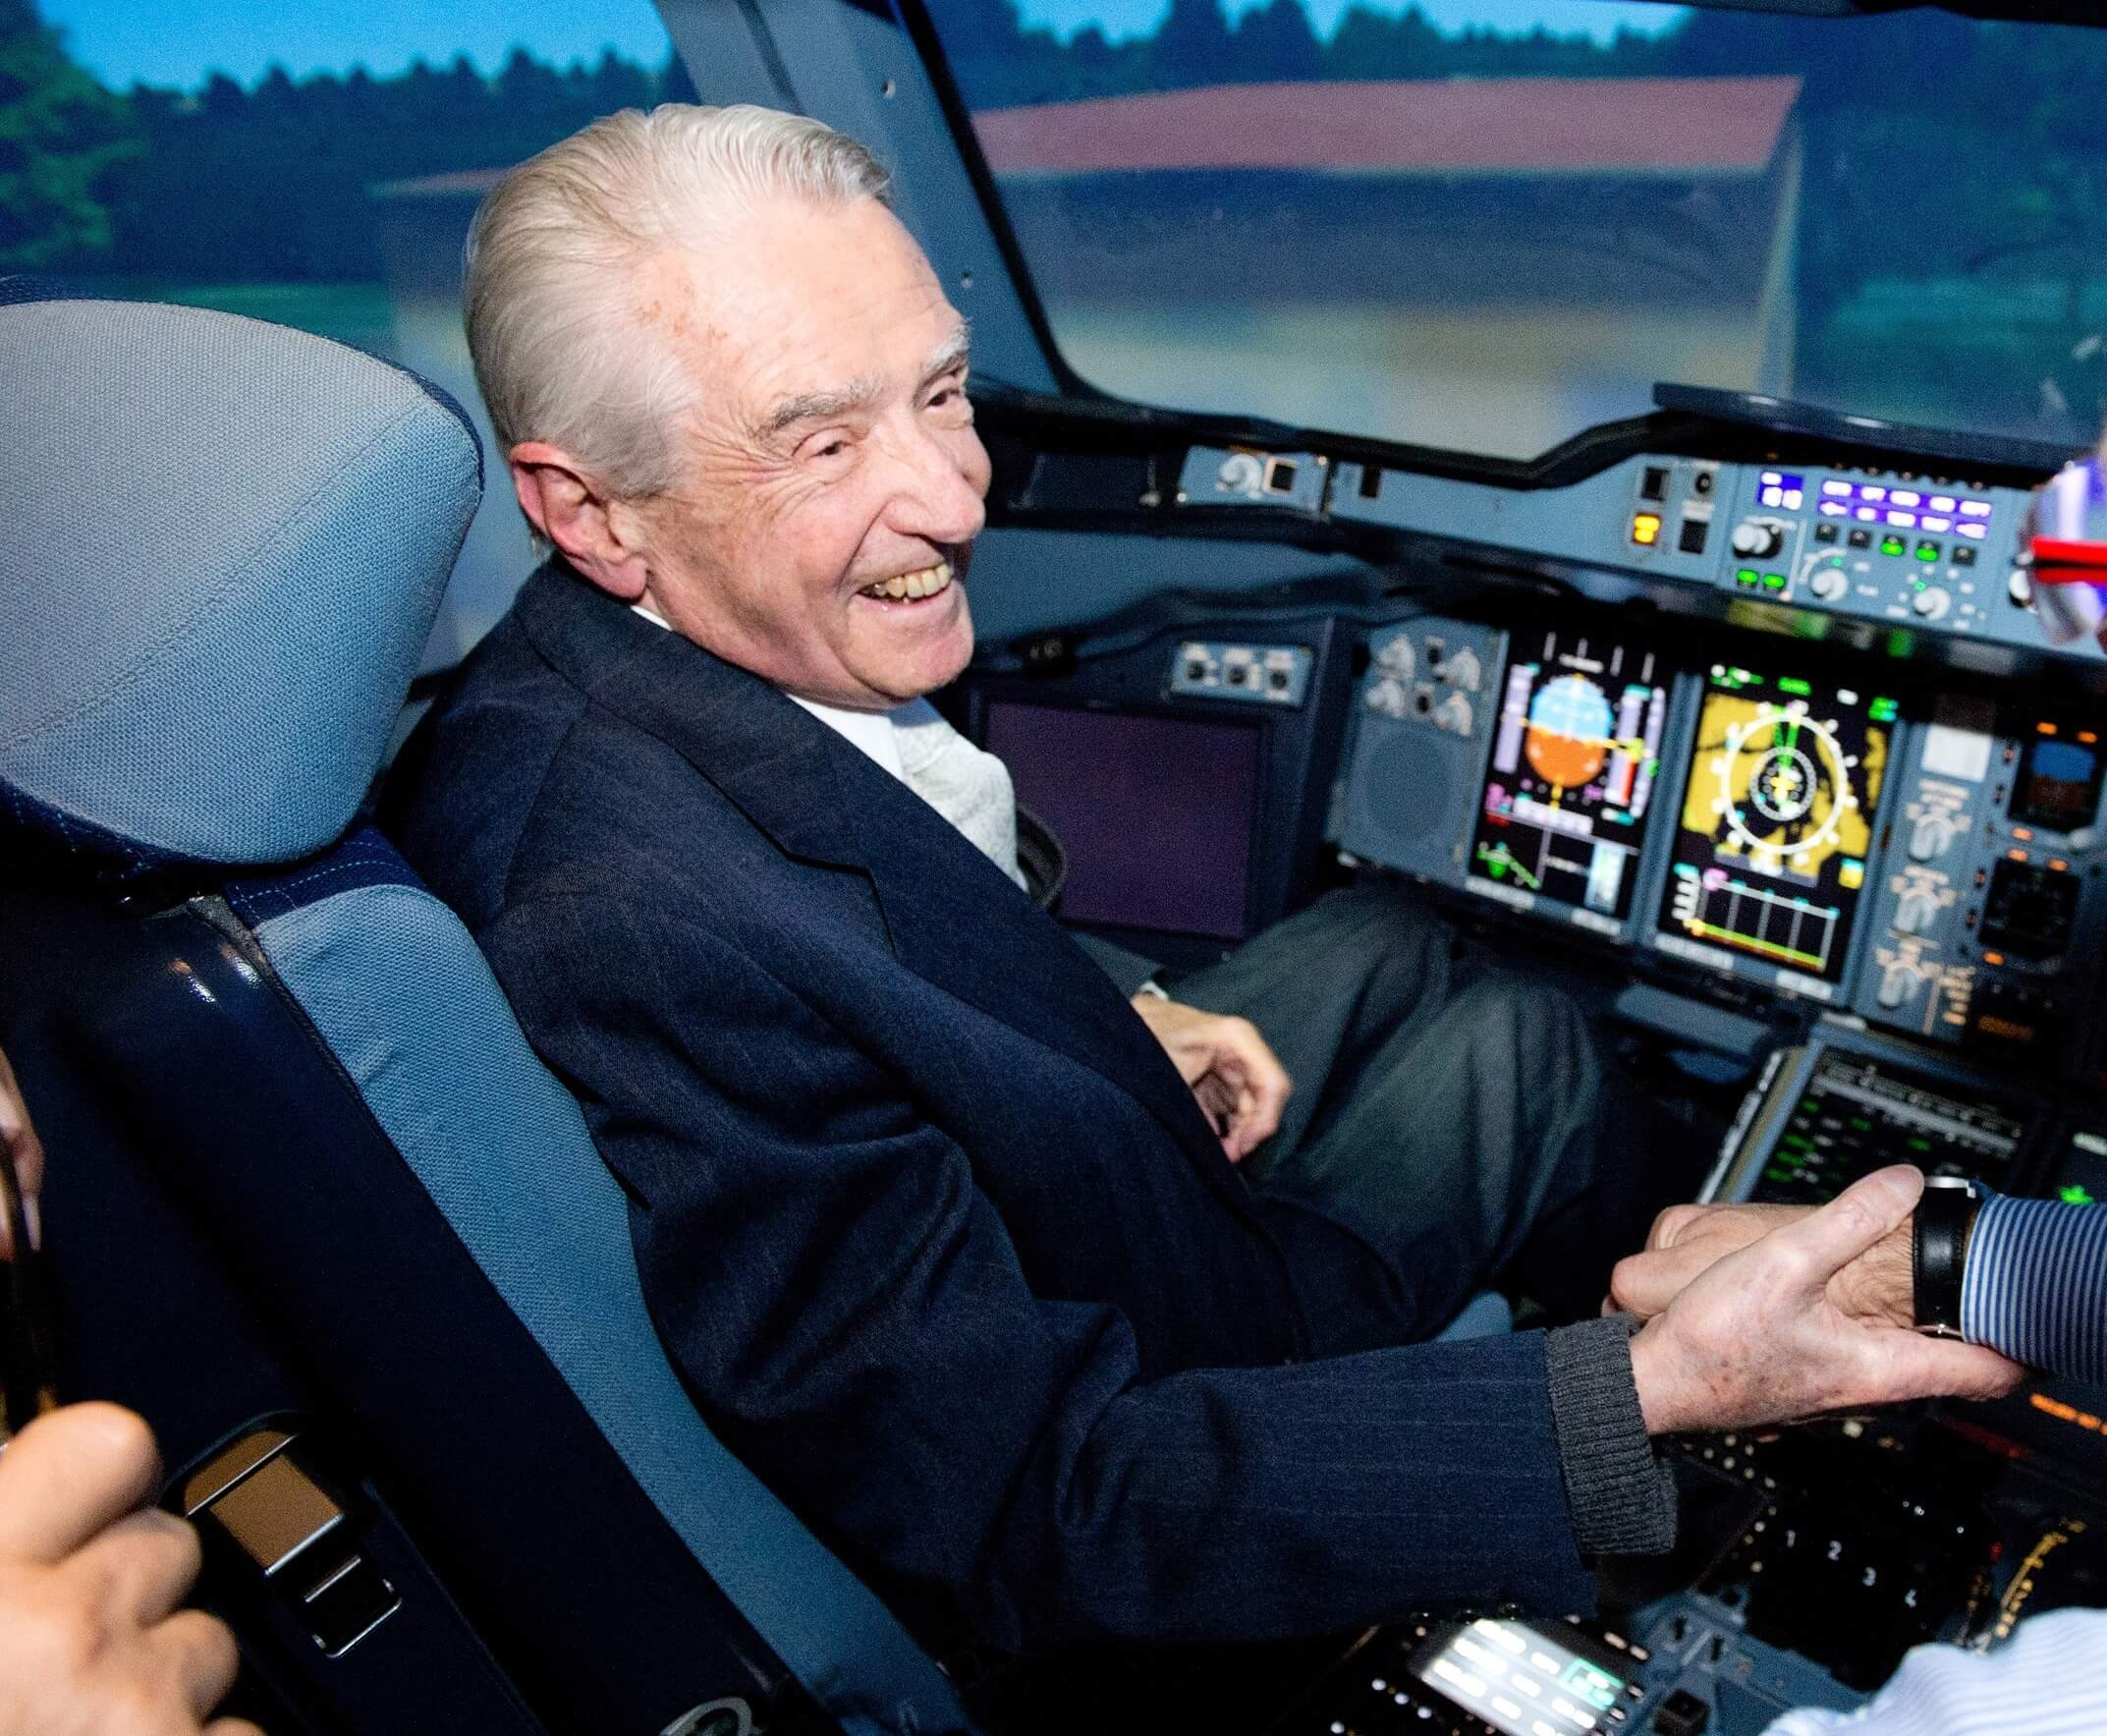 Airbus Founding Father And Visionary Roger Beteille Passes Away